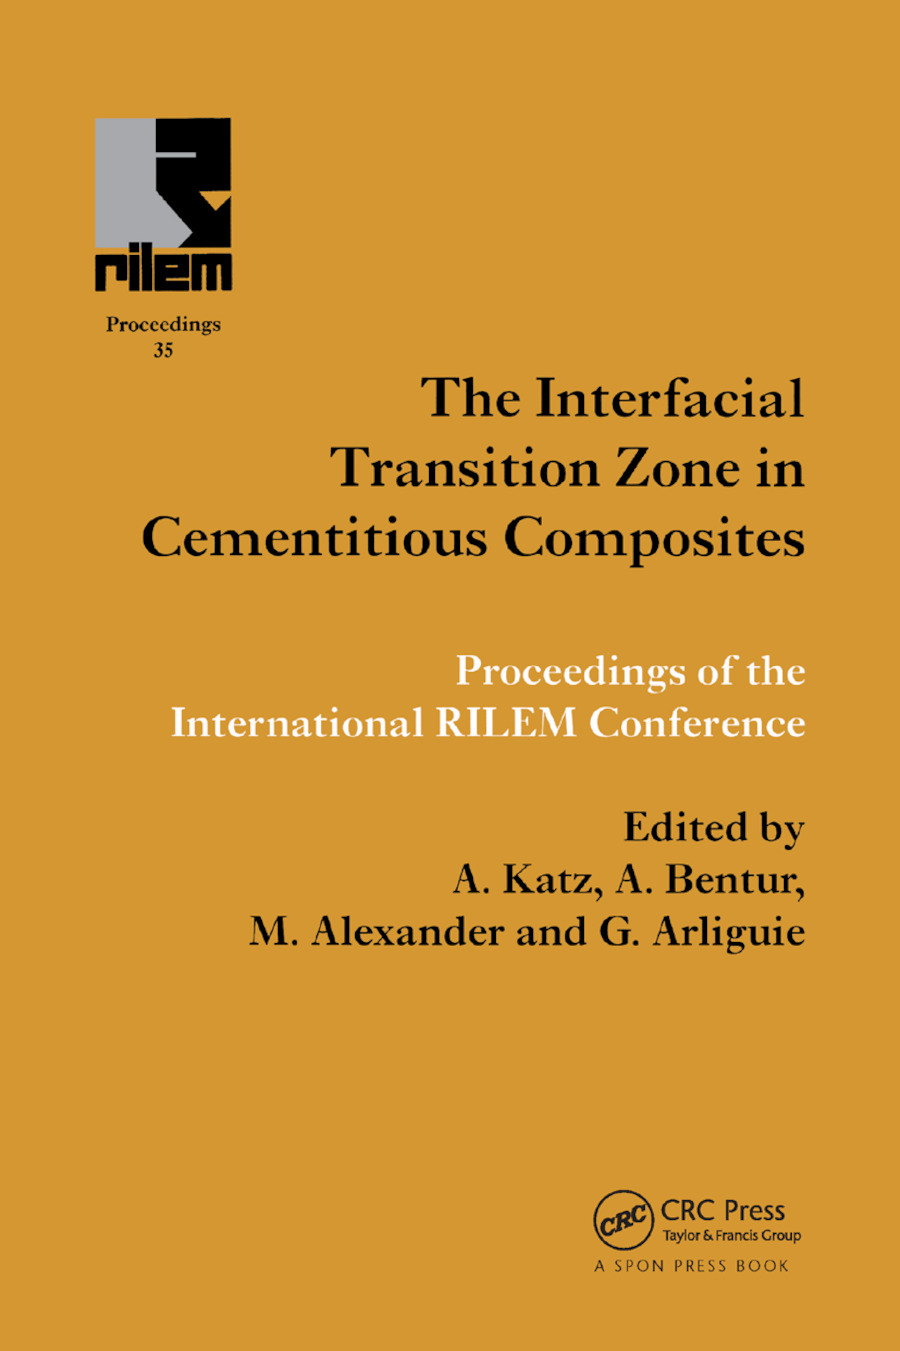 Interfacial Transition Zone in Cementitious Composites